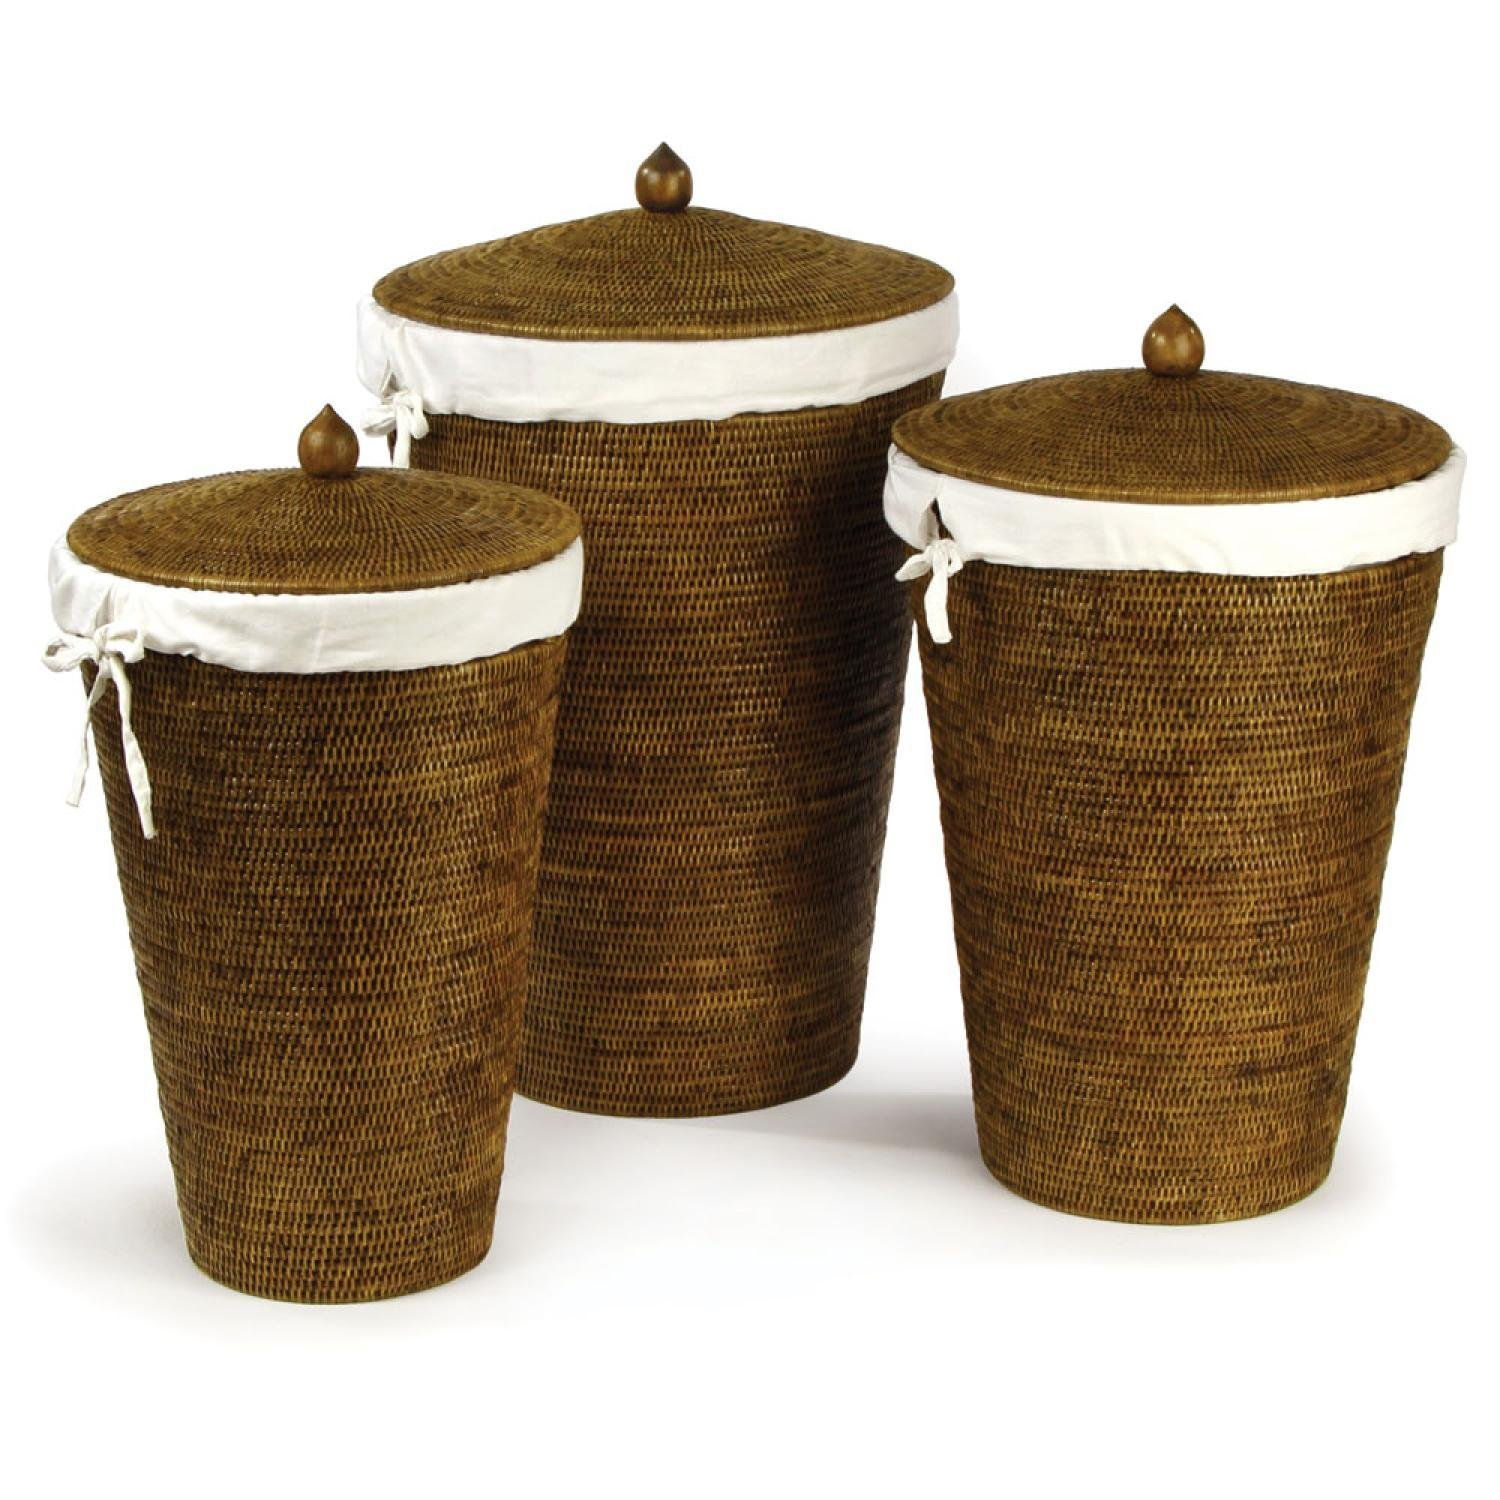 Set of 3 Handcrafted Burmese Rattan Laundry Hampers 26.5""